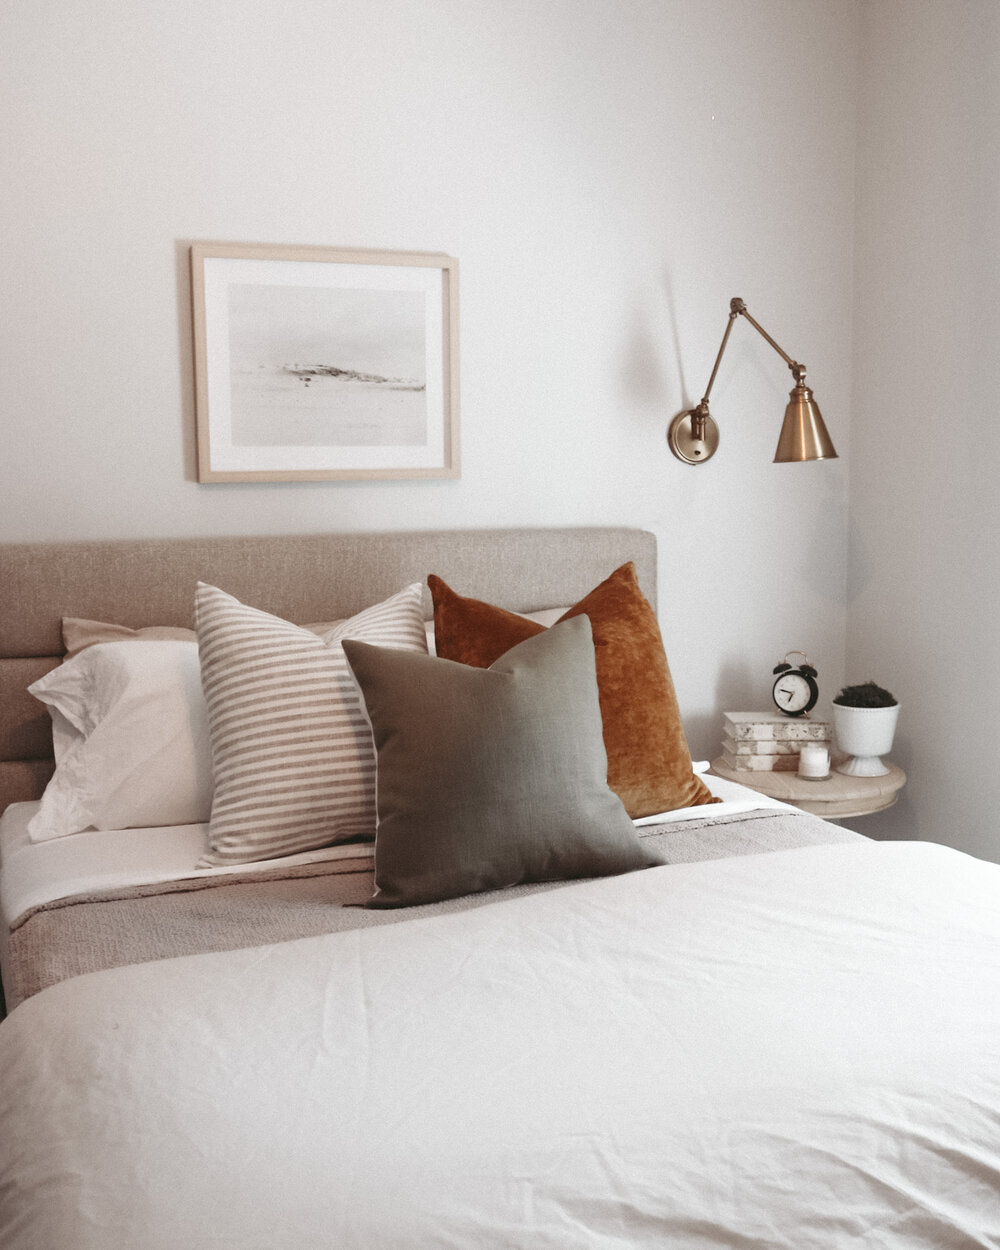 Guest room bed decor